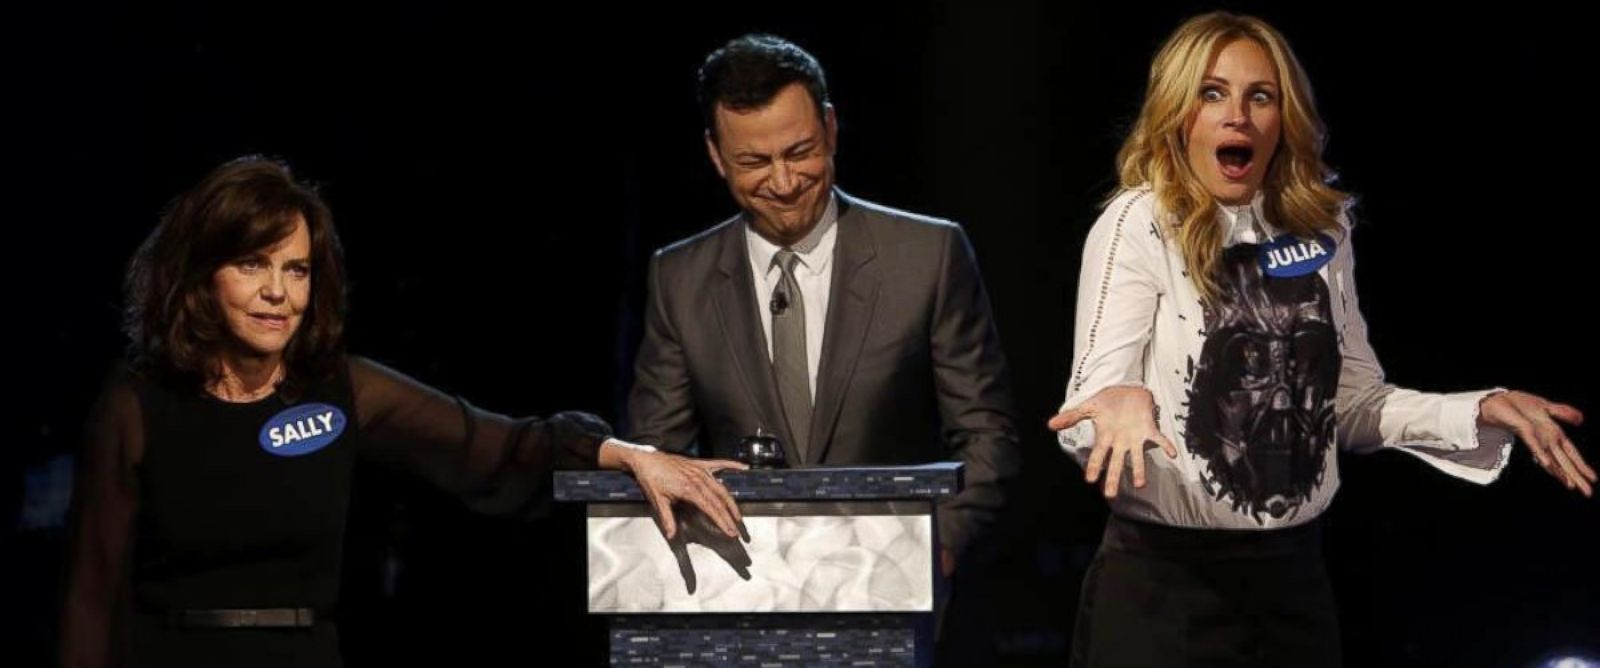 """PHOTO: Sally Field and Julia Roberts appear in a skit called """"Celebrity Curse-Off"""" on """"Jimmy Kimmel Live,"""" May 5, 2014."""